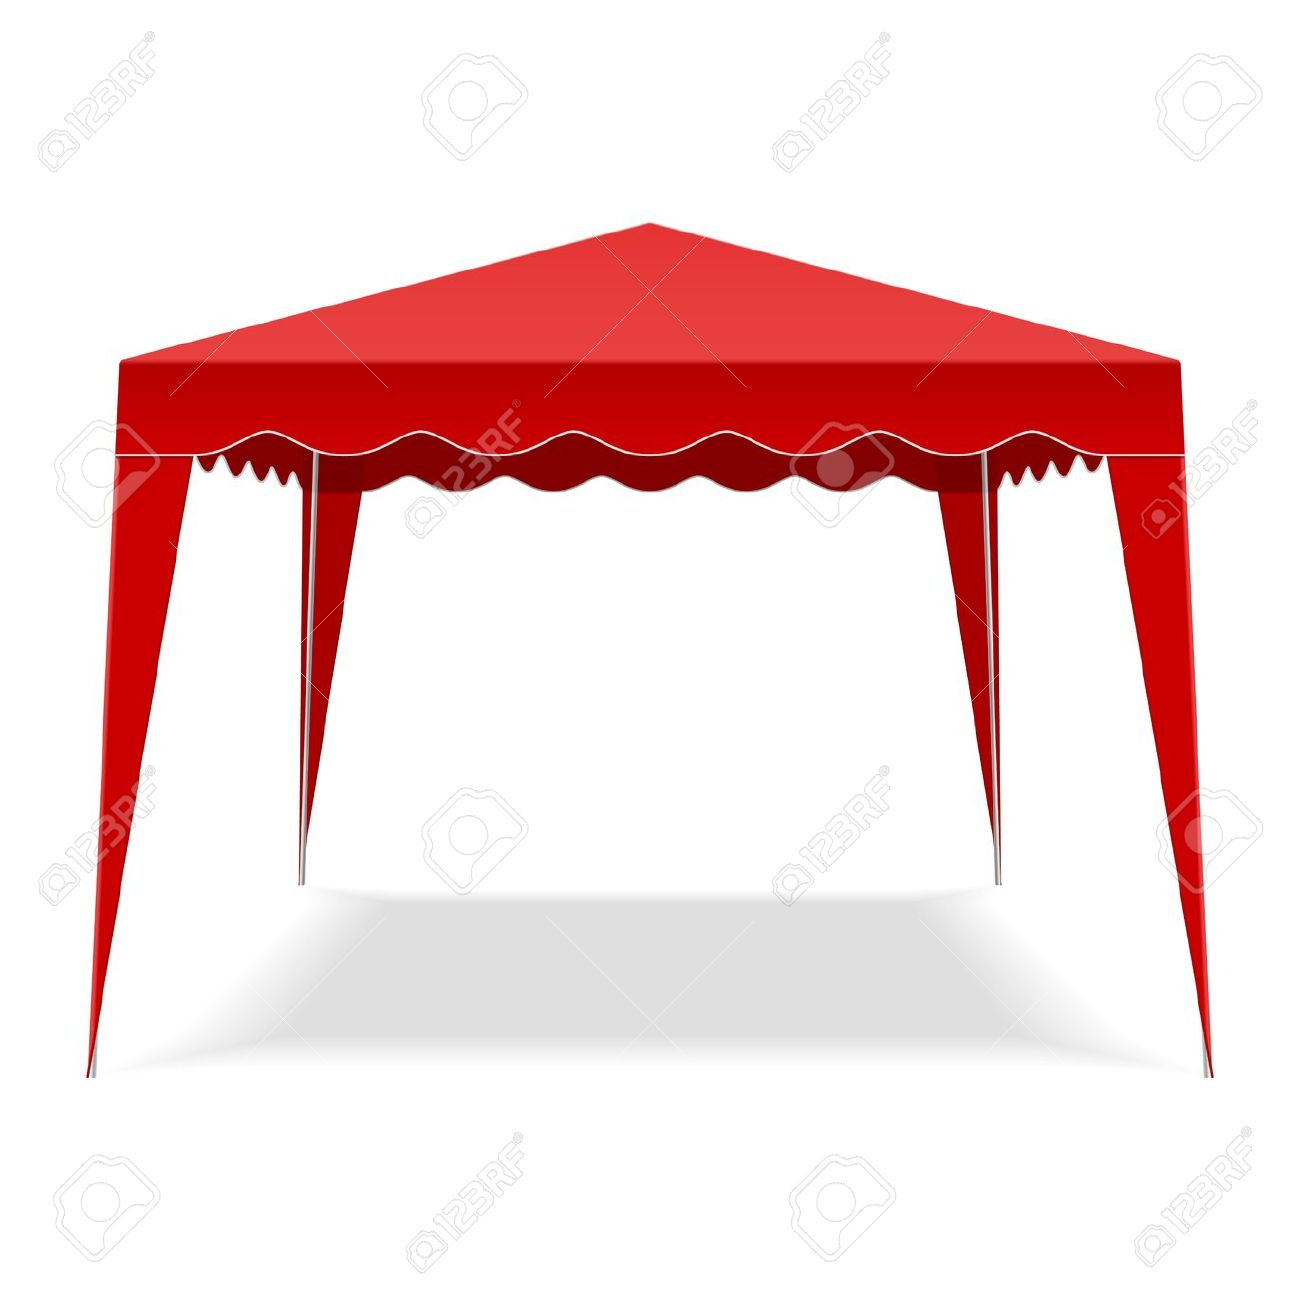 Gazebo clipart Drawings Canopy Download Download clipart